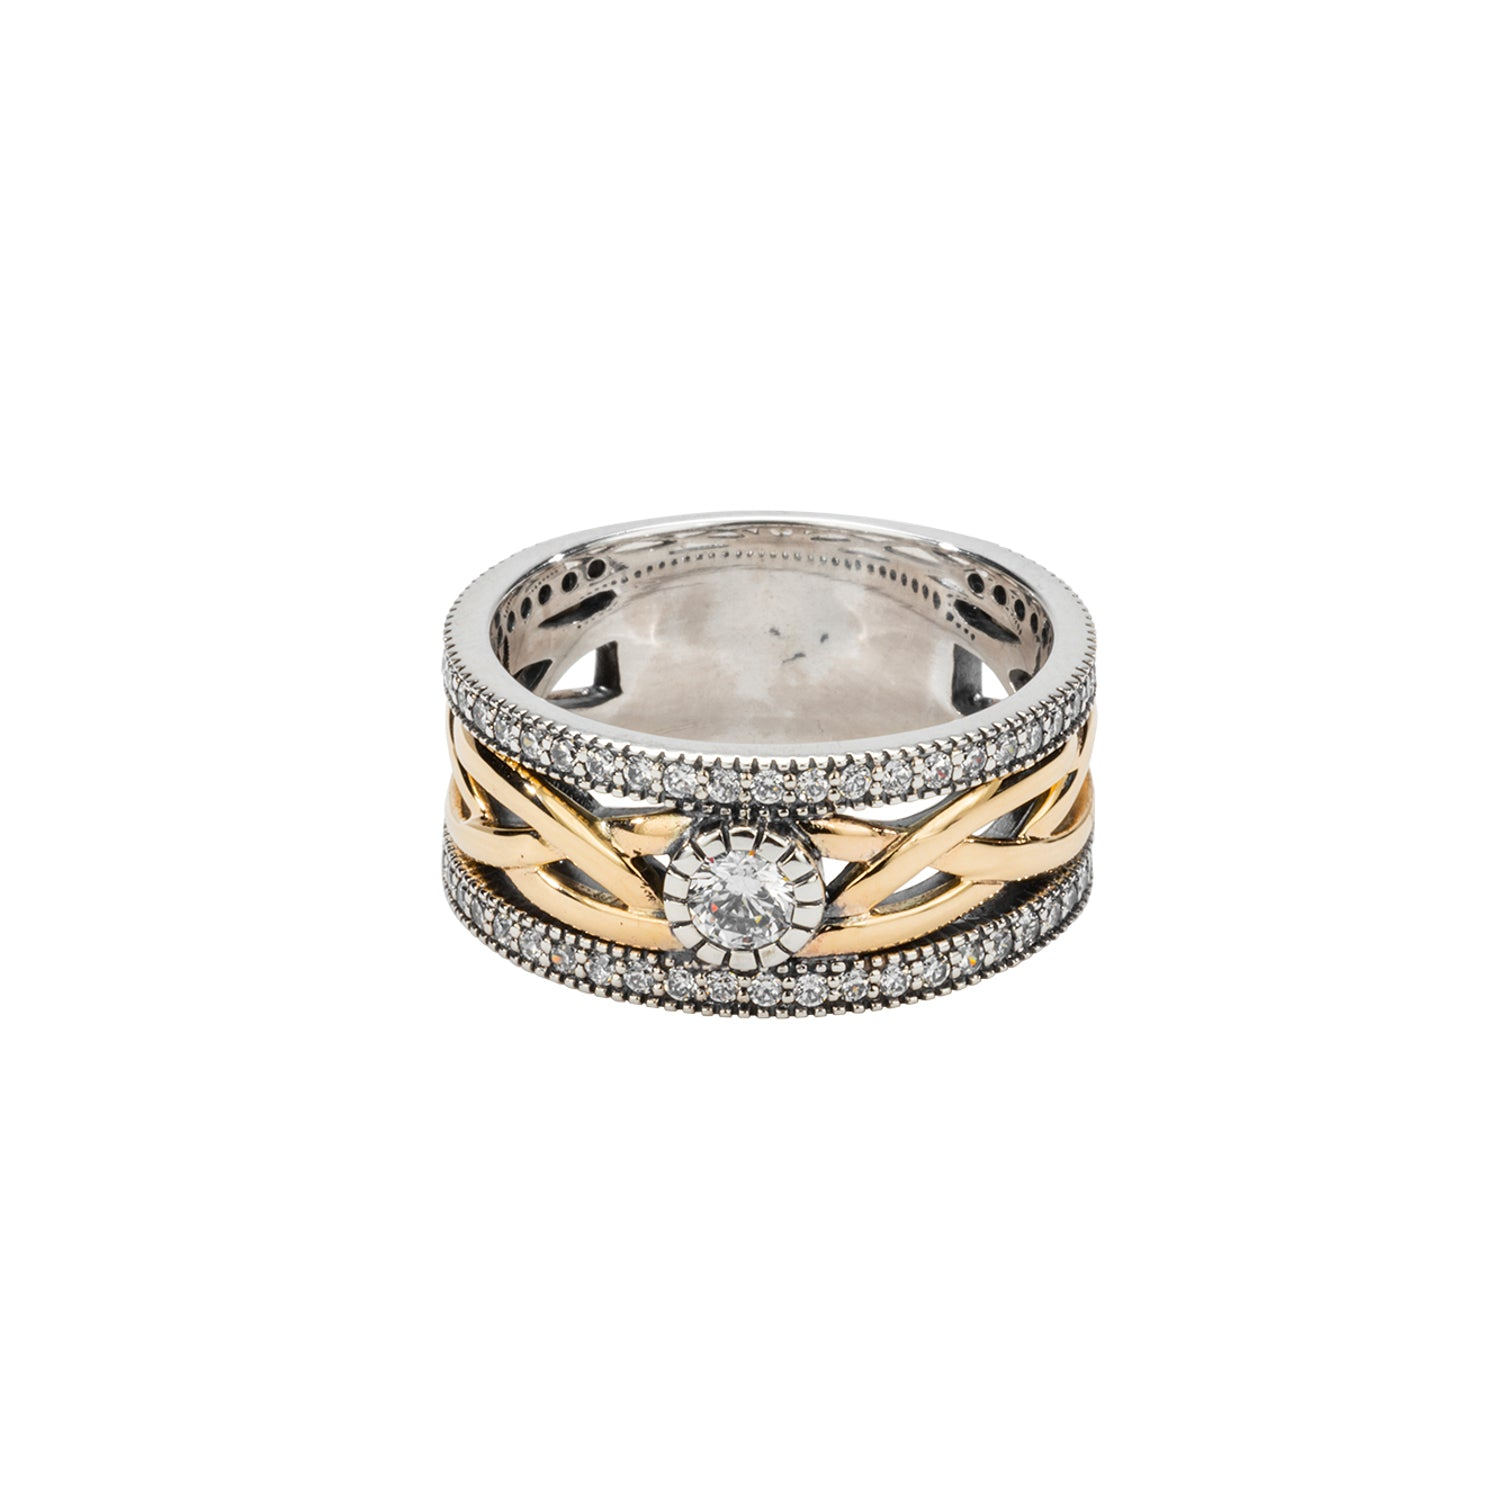 Ring Bands Oxidized 10k Yellow CZ Brave Heart Ring from welch and company jewelers near syracuse ny